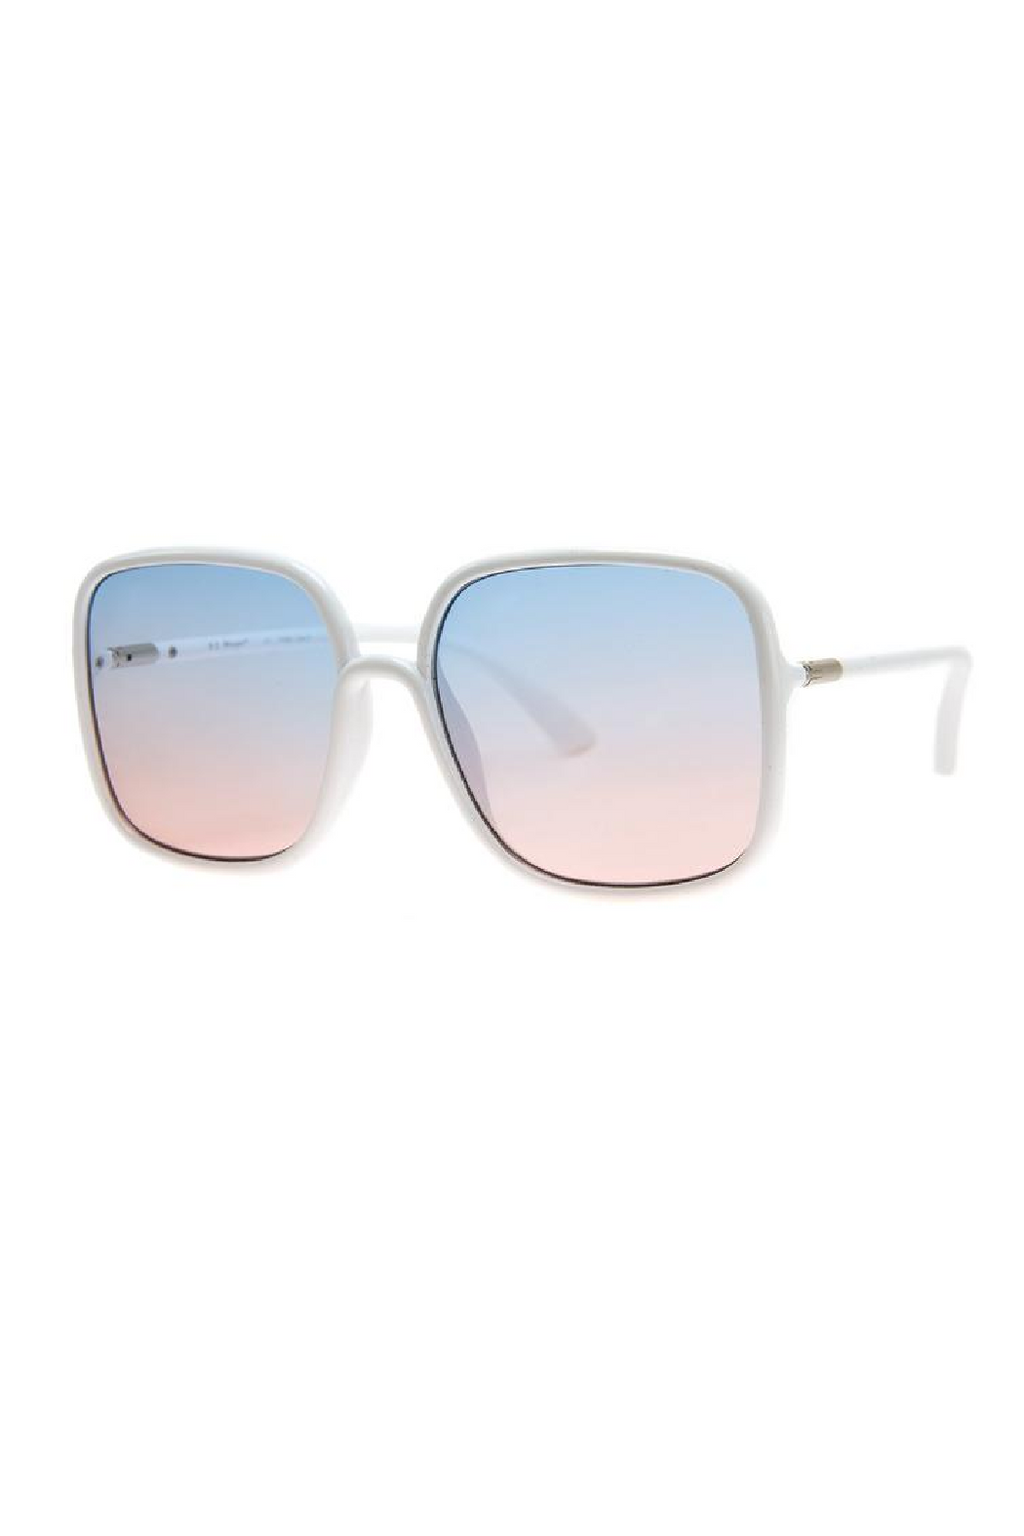 Posterity Sunnies - White